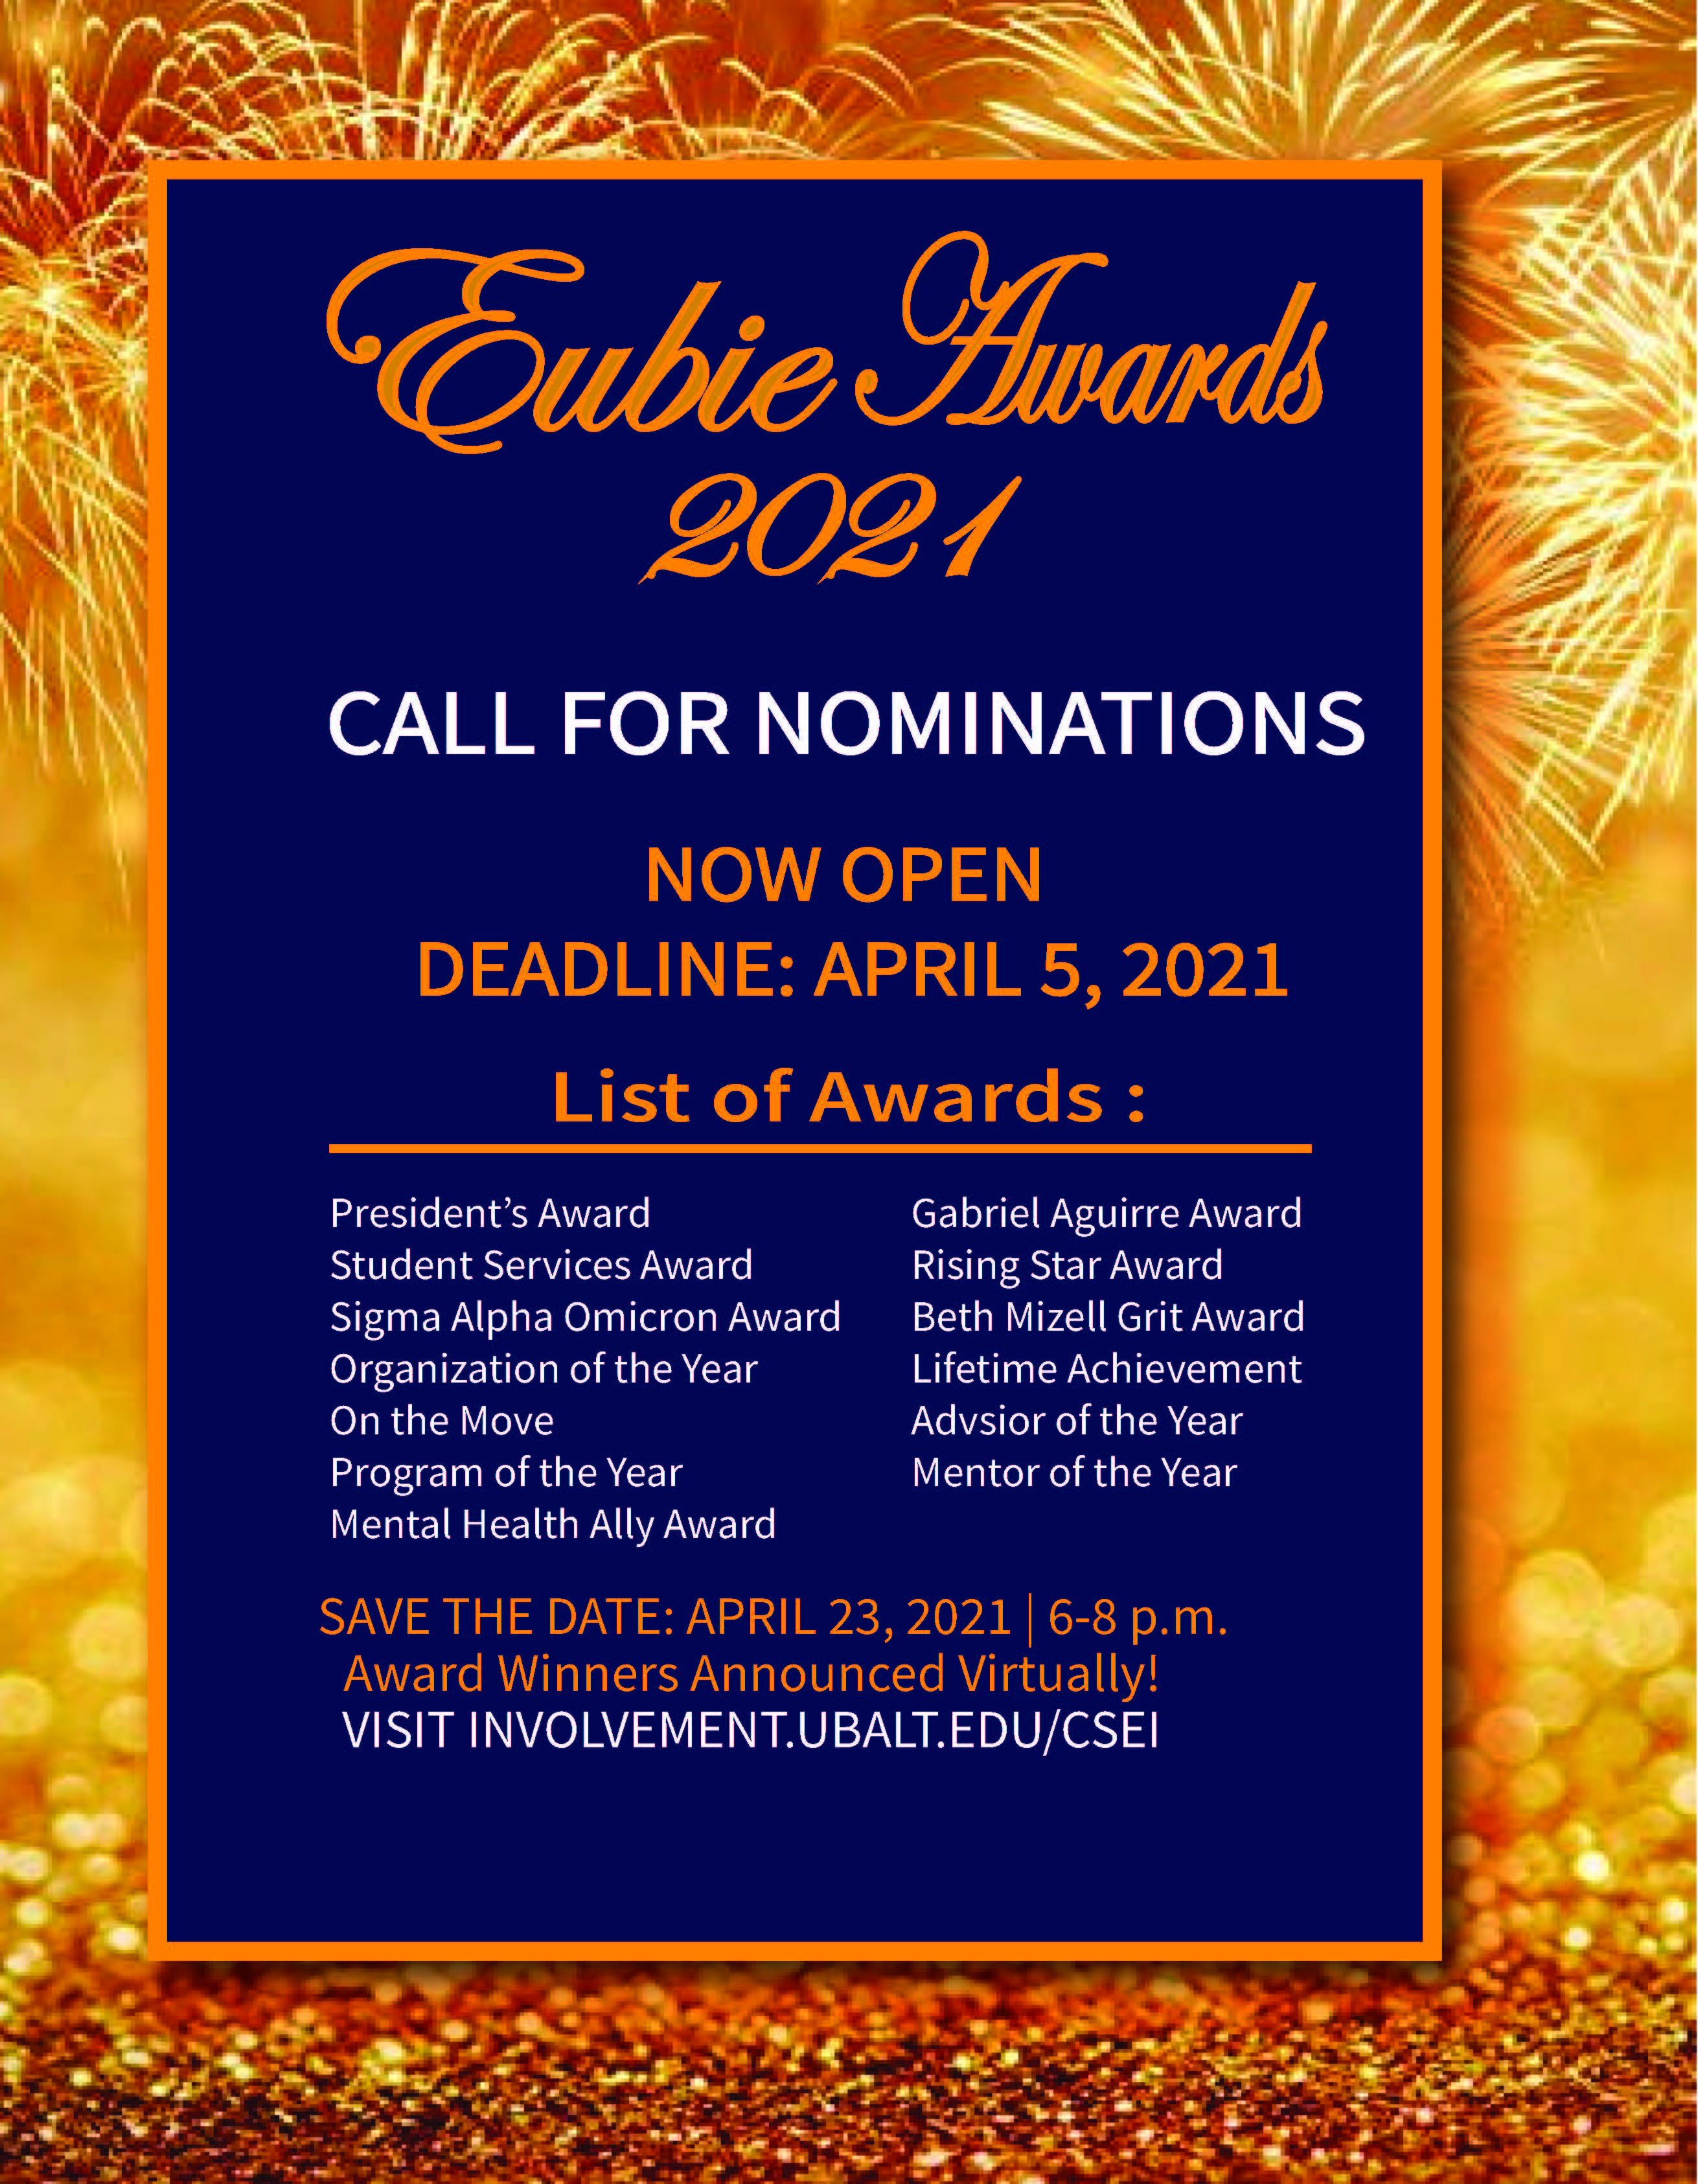 Eubie Awards Nominations Officially Open!